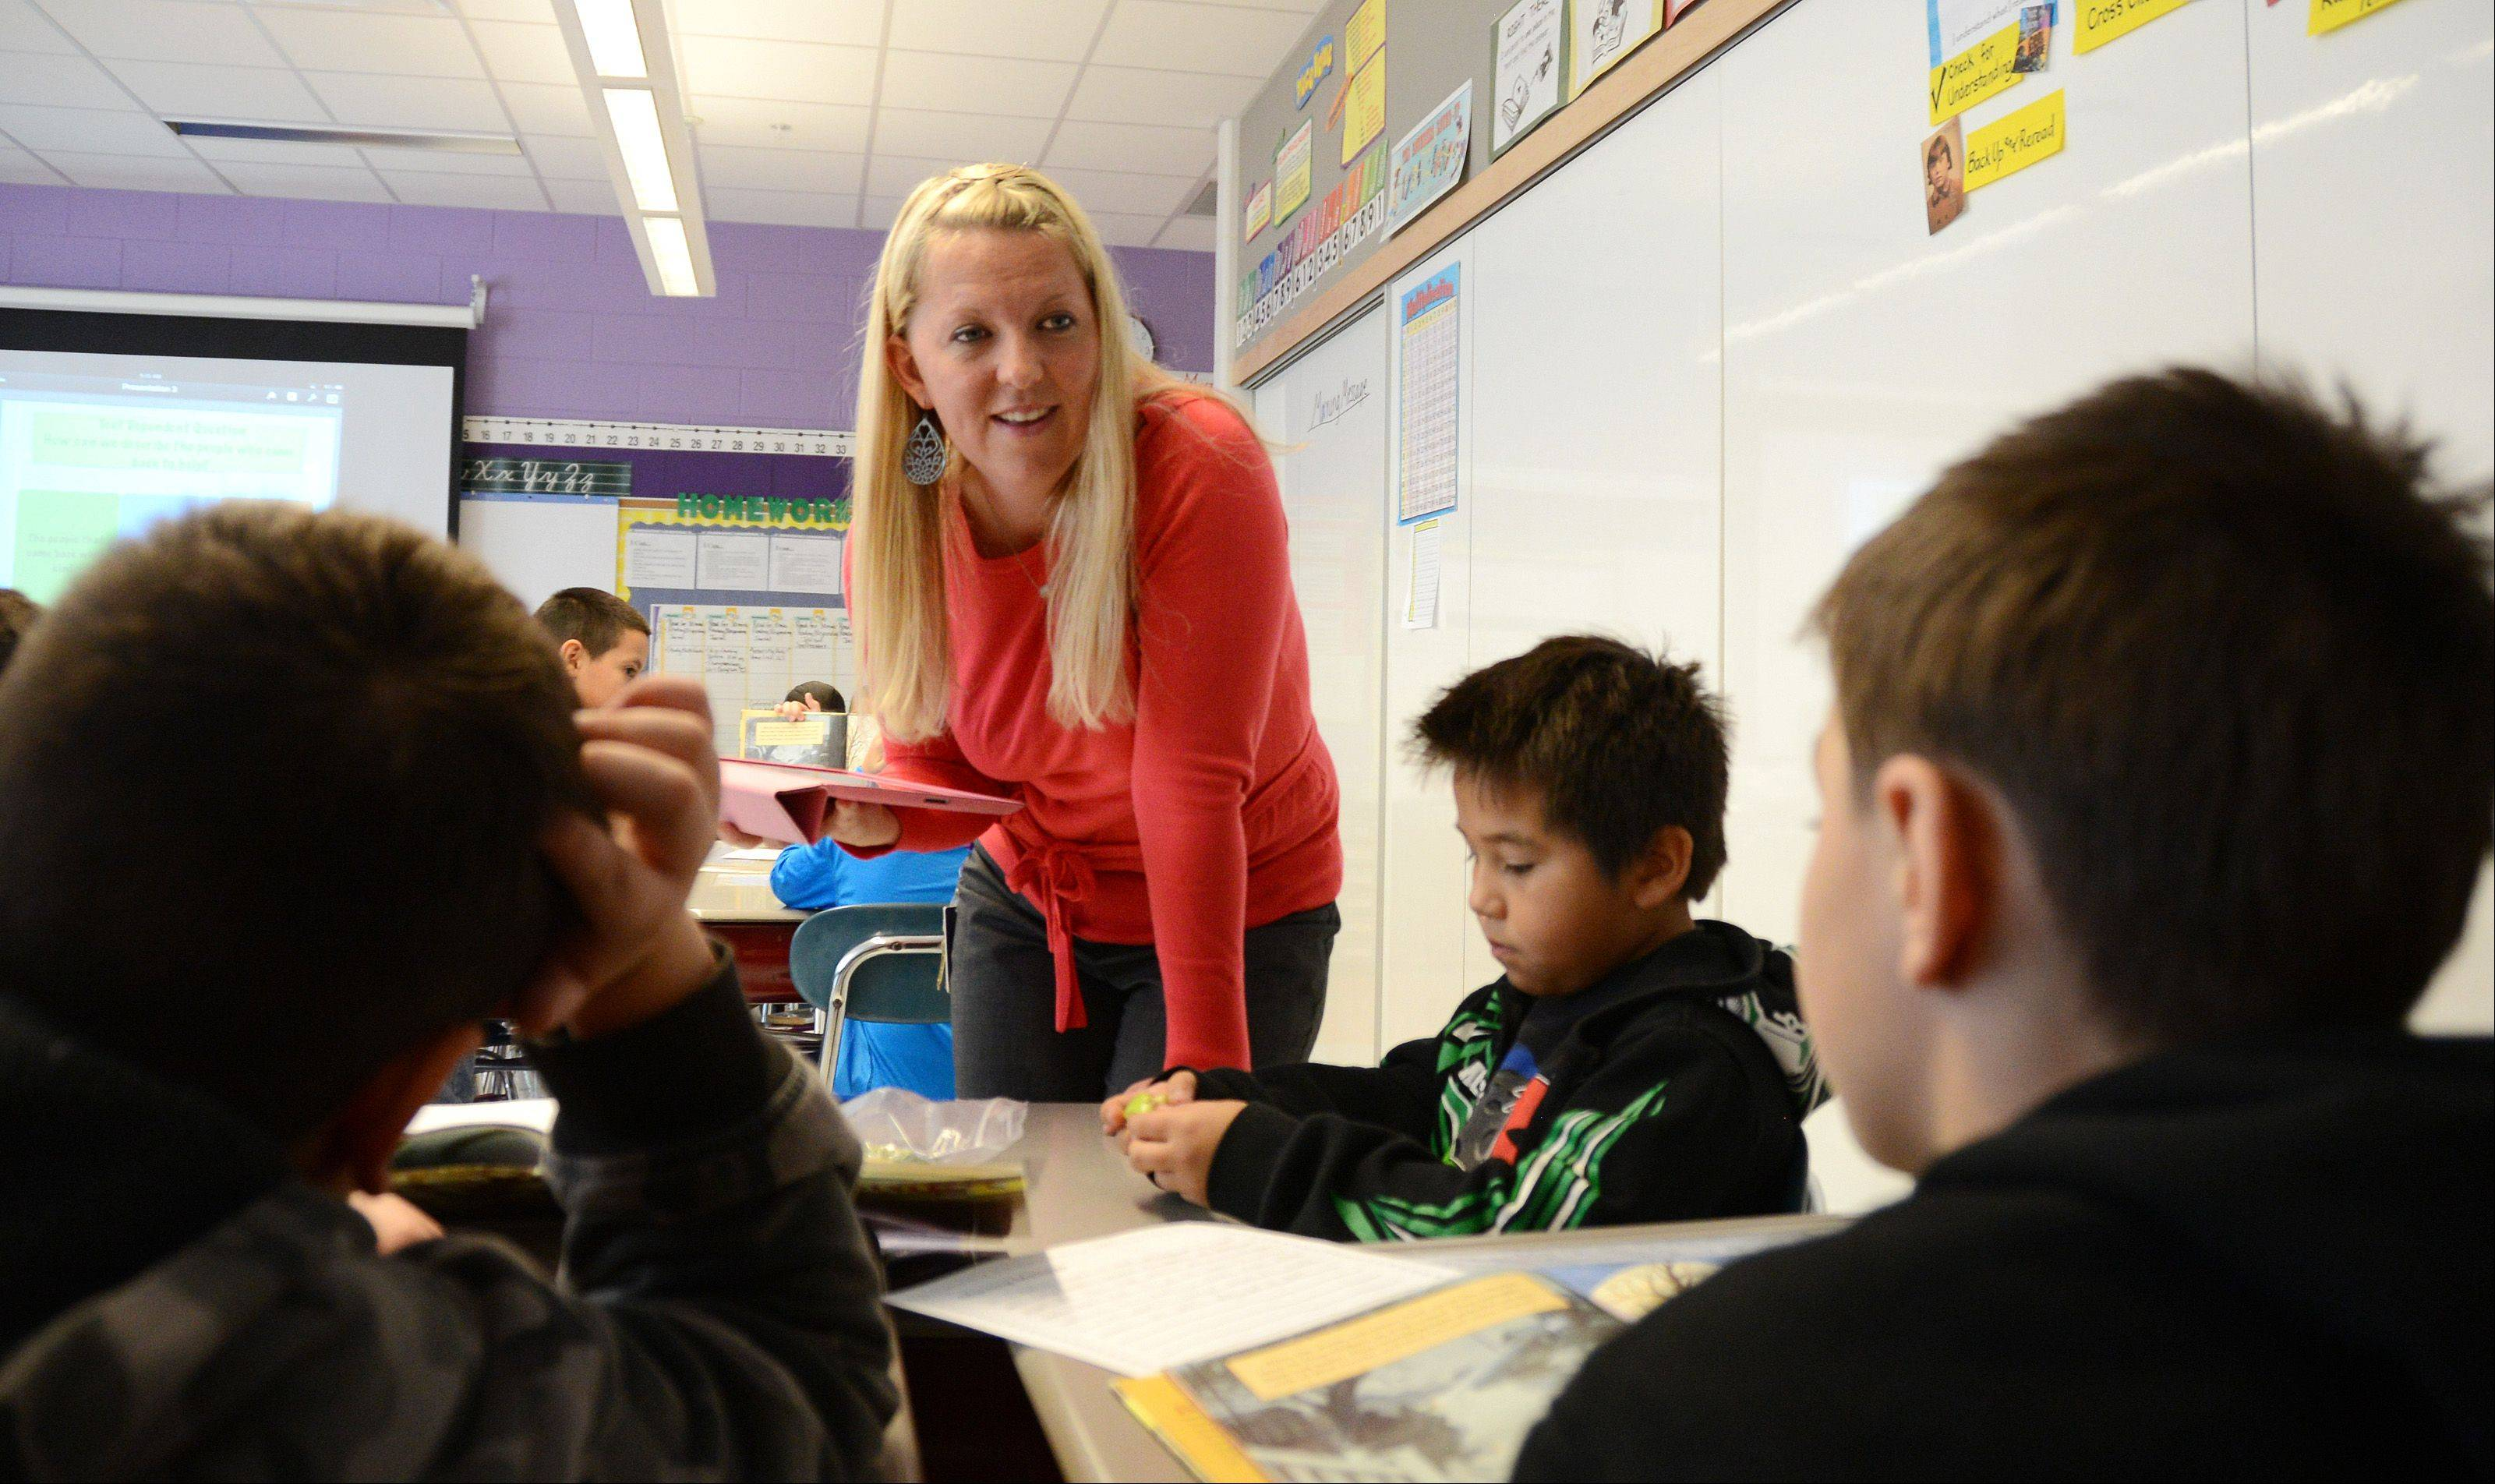 "Amy Walsh, a fourth-grade teacher at Tioga Elementary School in Bensenville, is one of 11 finalists for the state's Teacher of the Year Award. ""I love that moment when kids understand something, when you see that light in their eyes,"" she says."